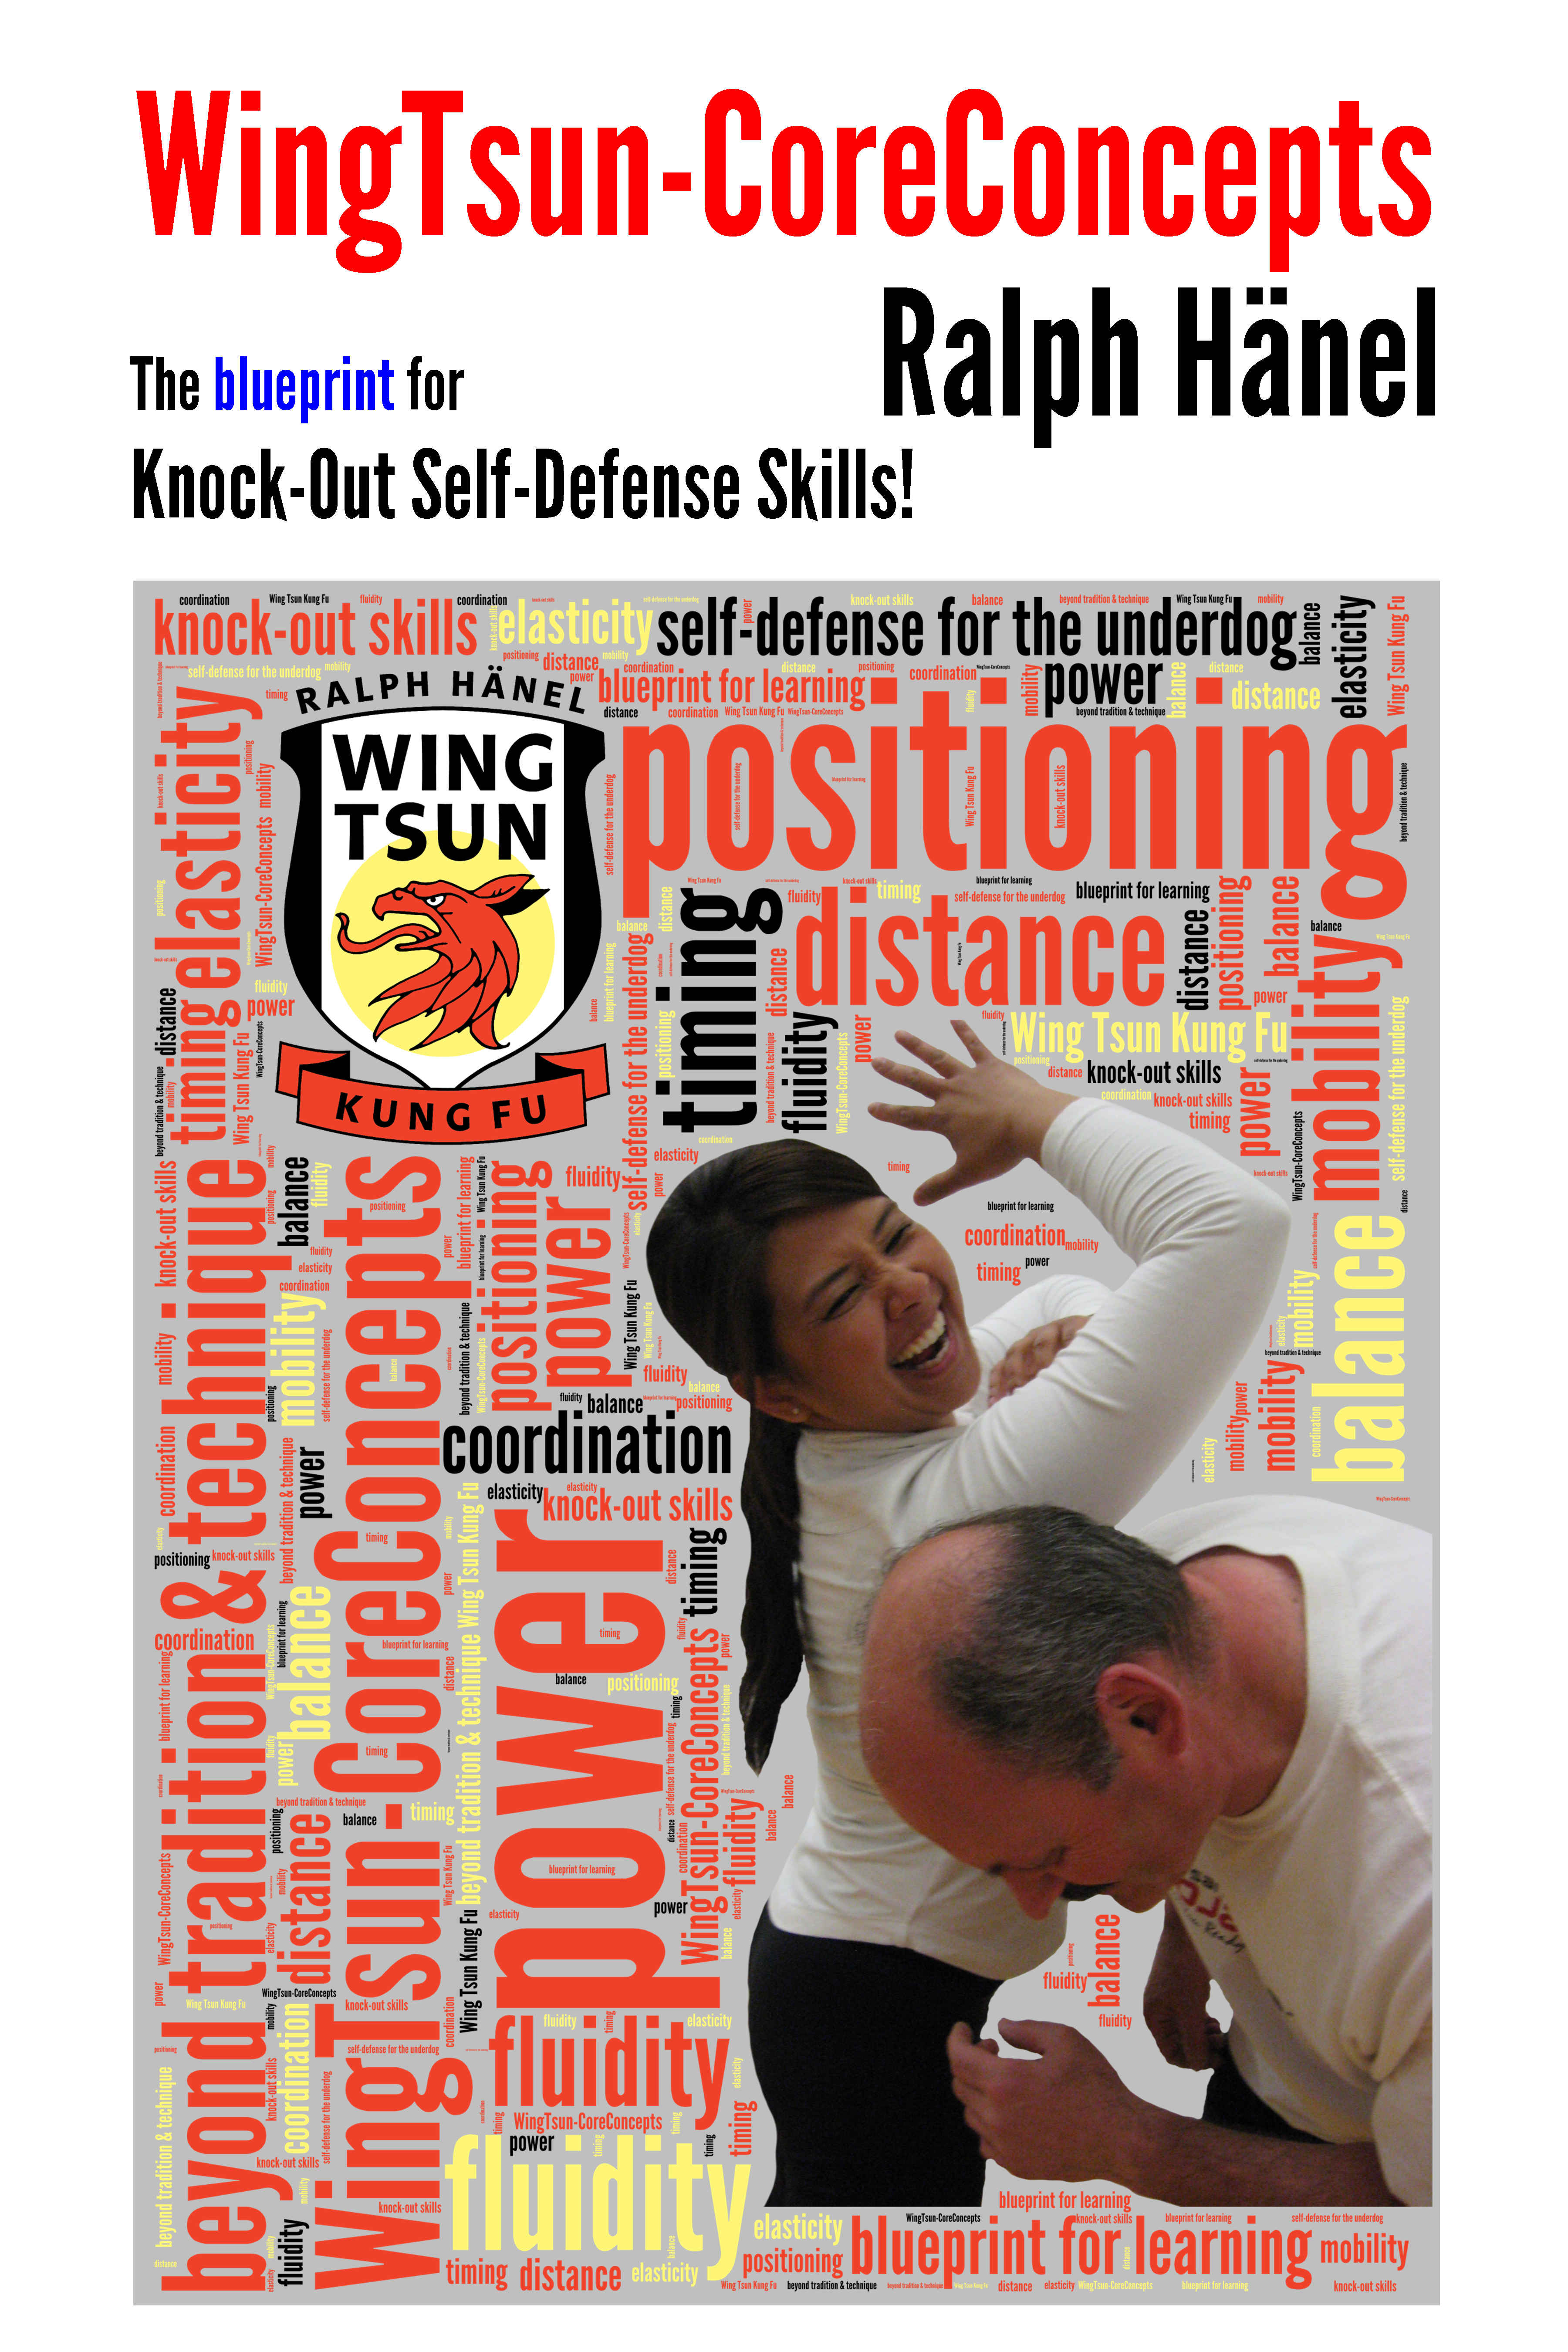 WingTsun-CoreConcepts a book by Ralph Haenel - Beyond tradition and technique, training concepts for Wing Tsun Kung Fu students and instructors